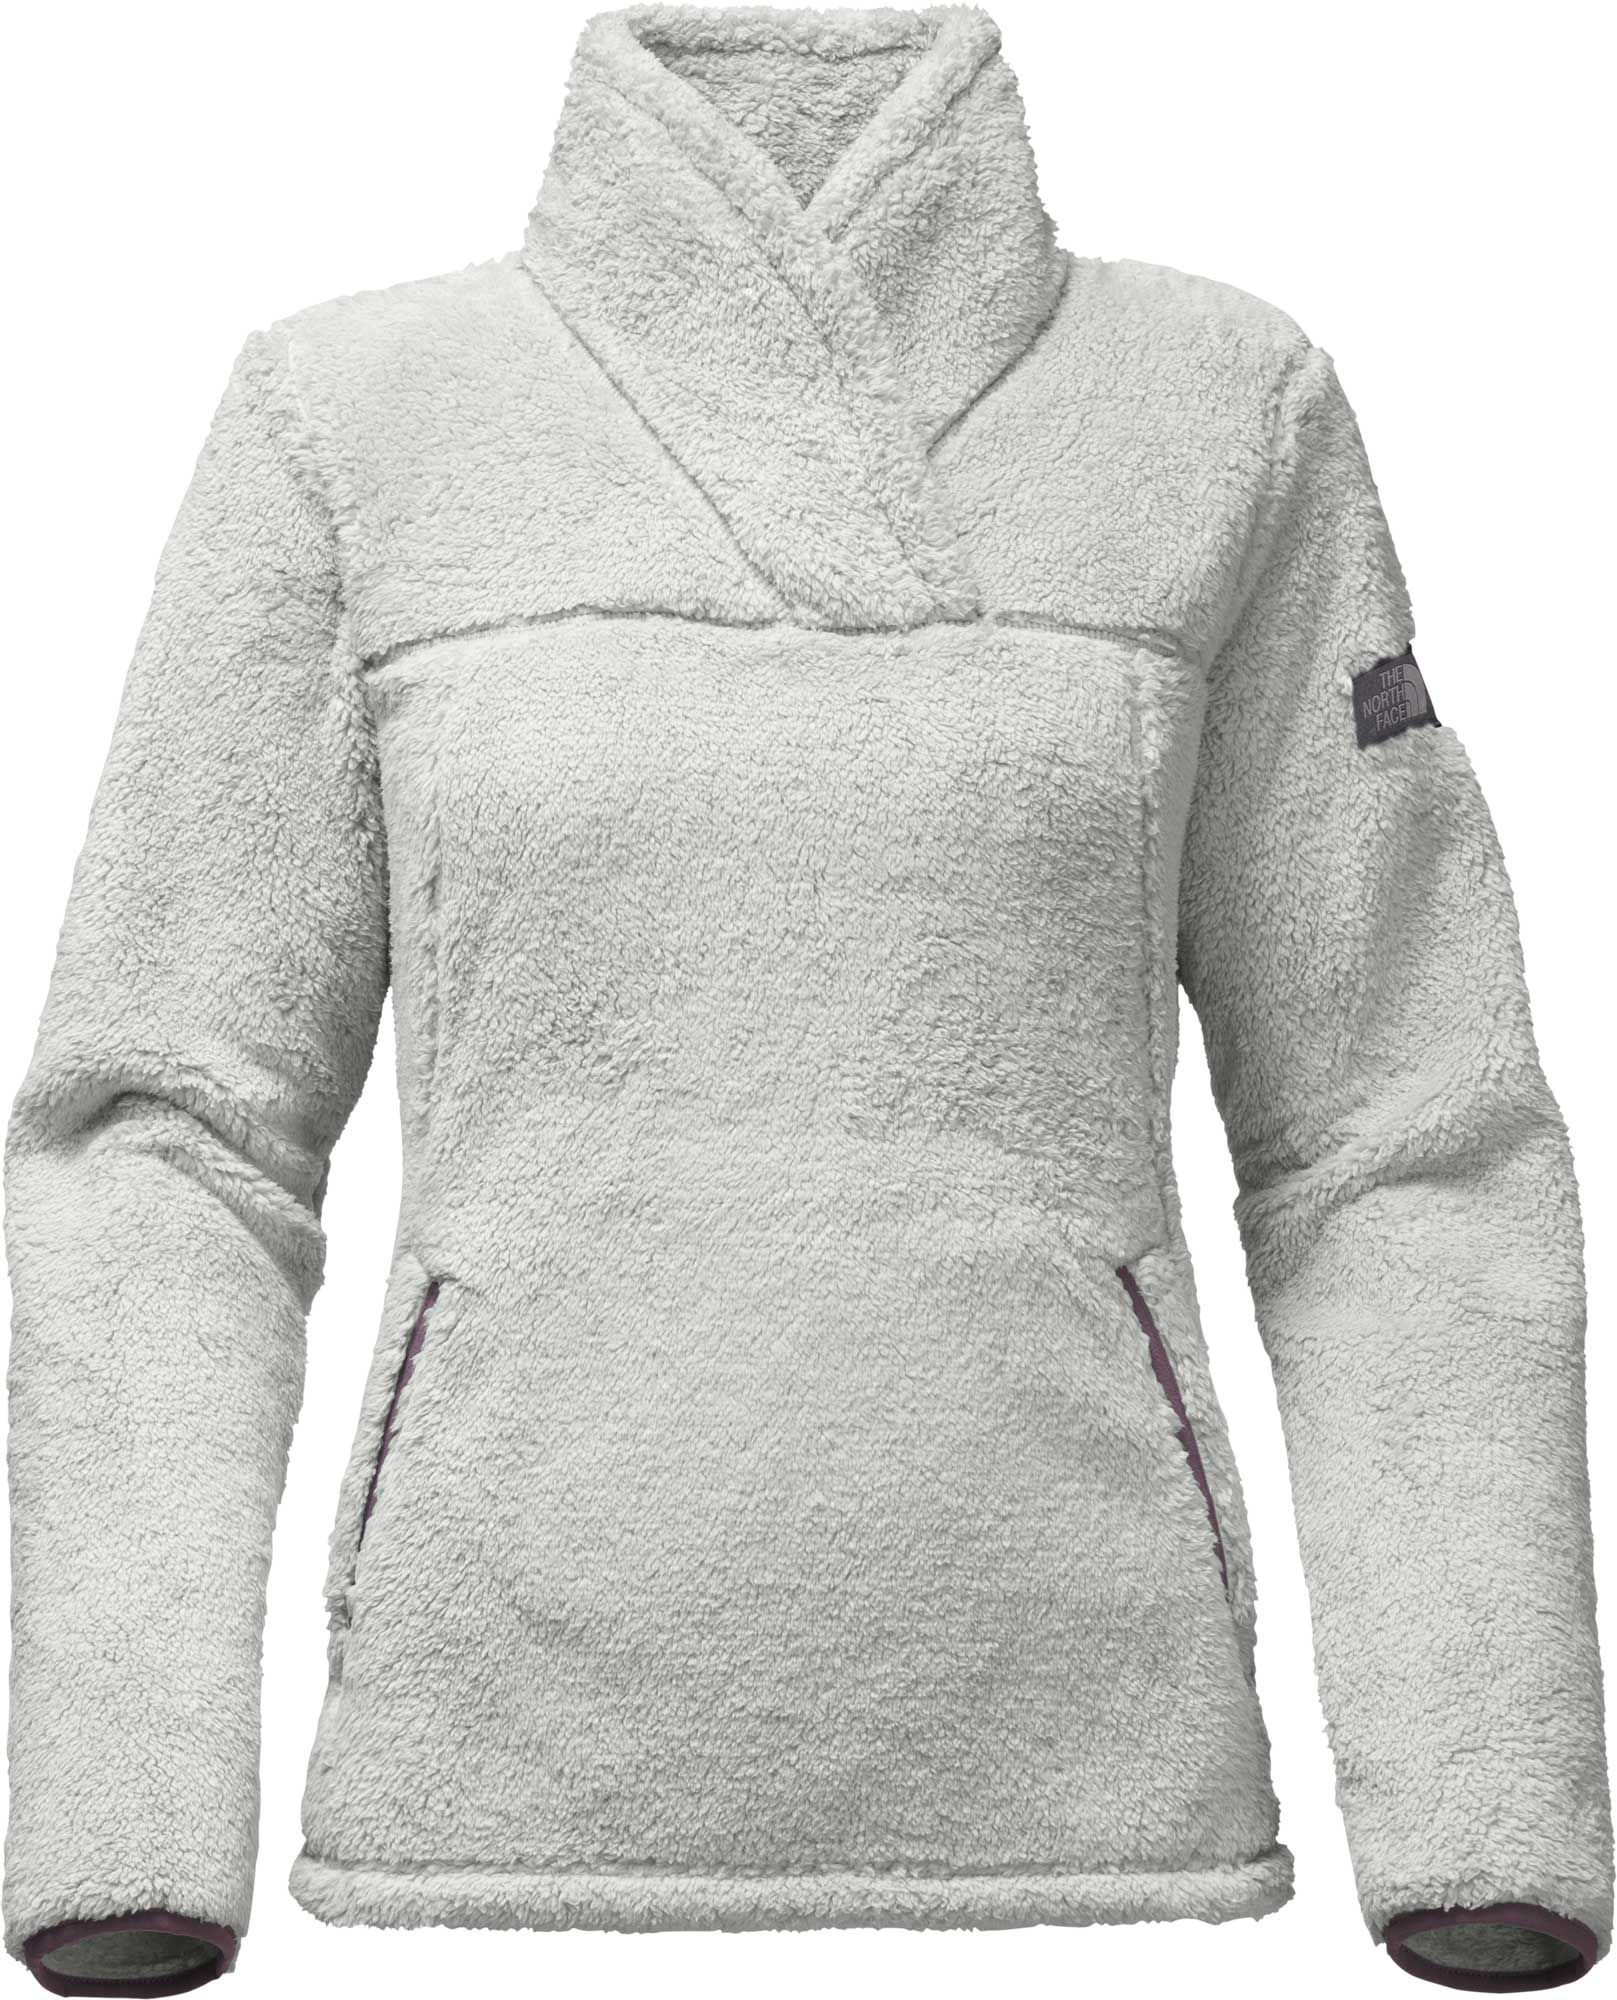 c29eeb9bd The North Face Women's Campshire Fleece Pullover, Size: Medium, Gray ...